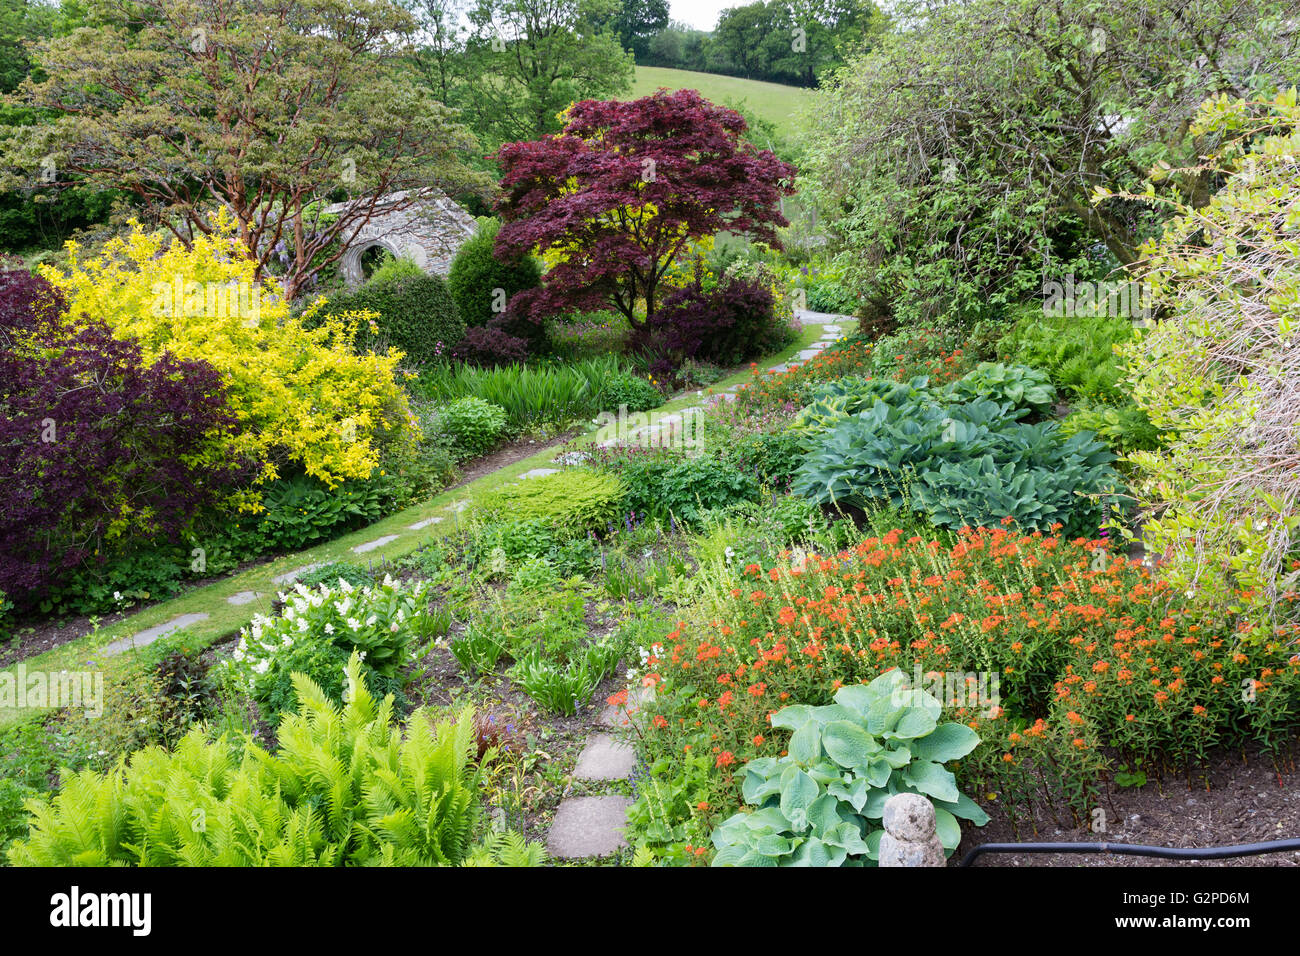 Foliage and floral display at the start of summer in the walled garden, the Garden House, Devon, UK - Stock Image